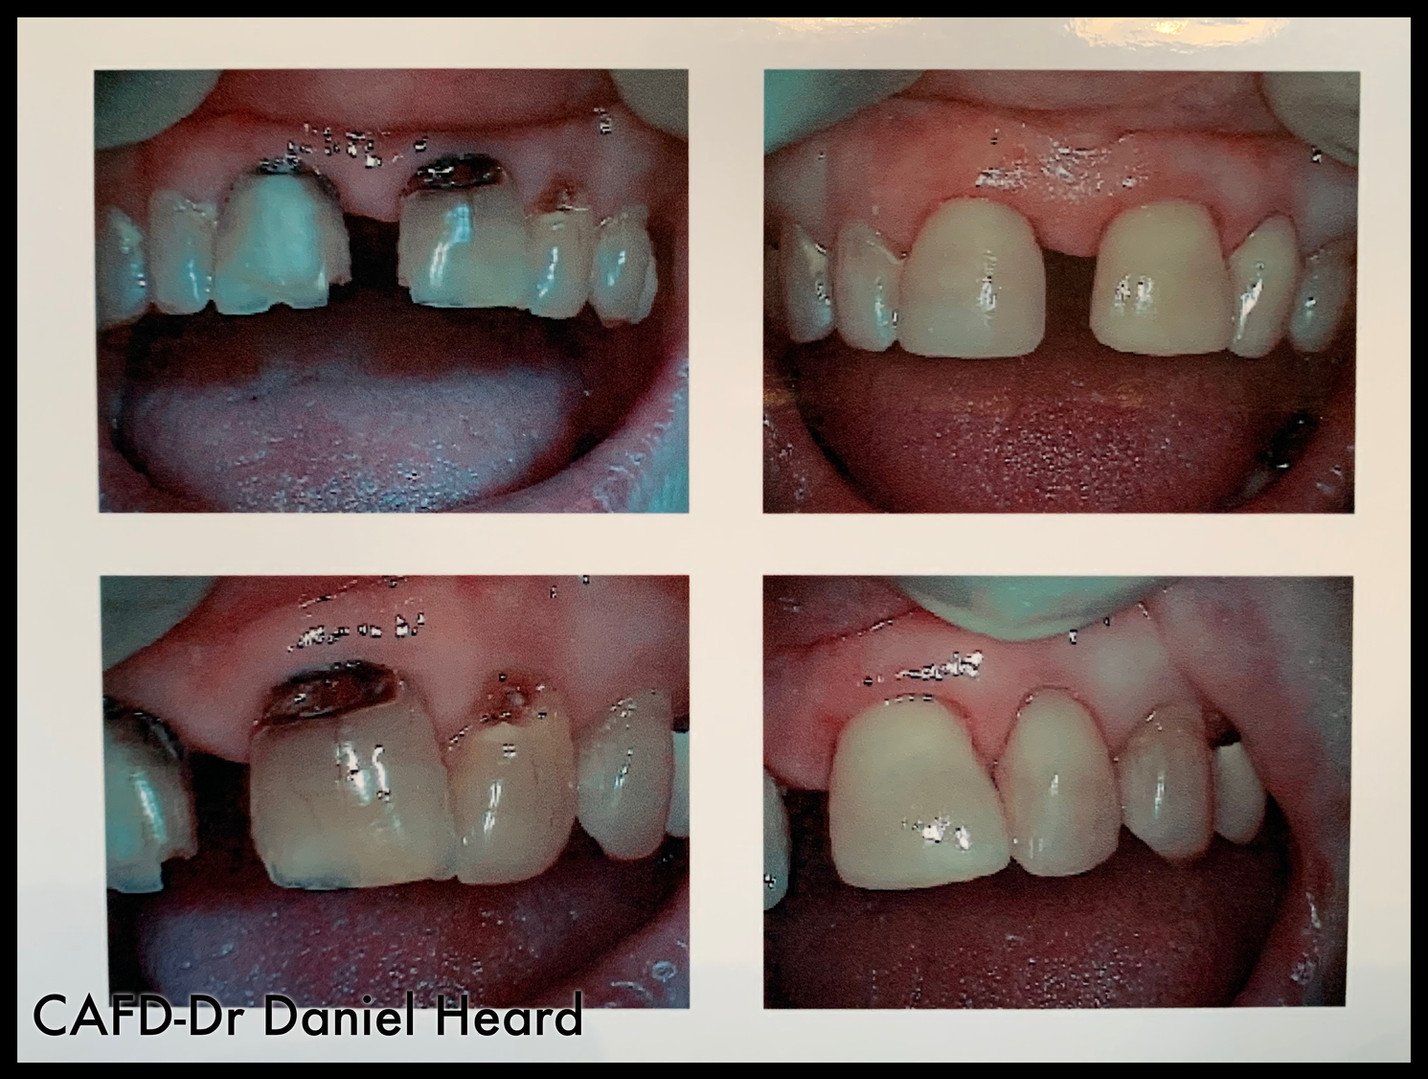 CAFD-Dr Daniel Heard-Fillings